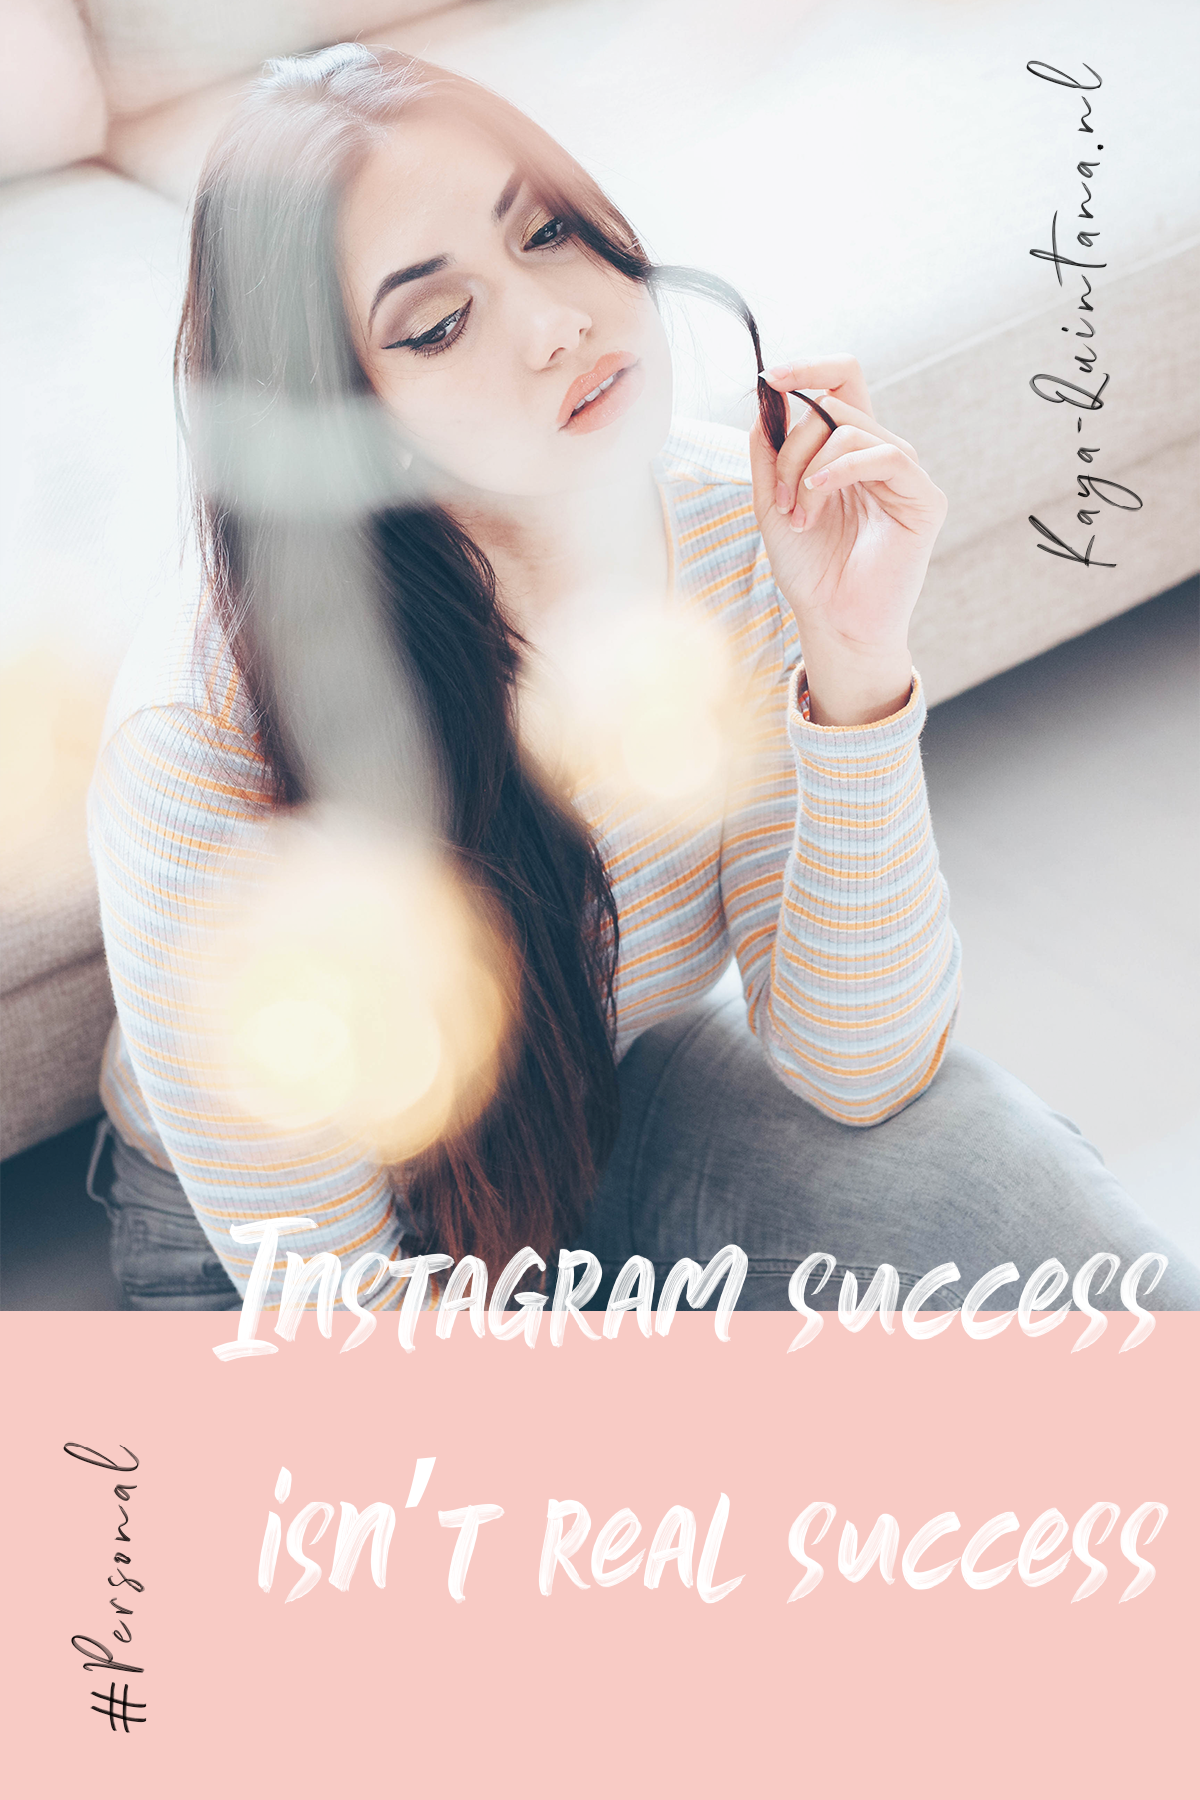 Instagram success isn't real success